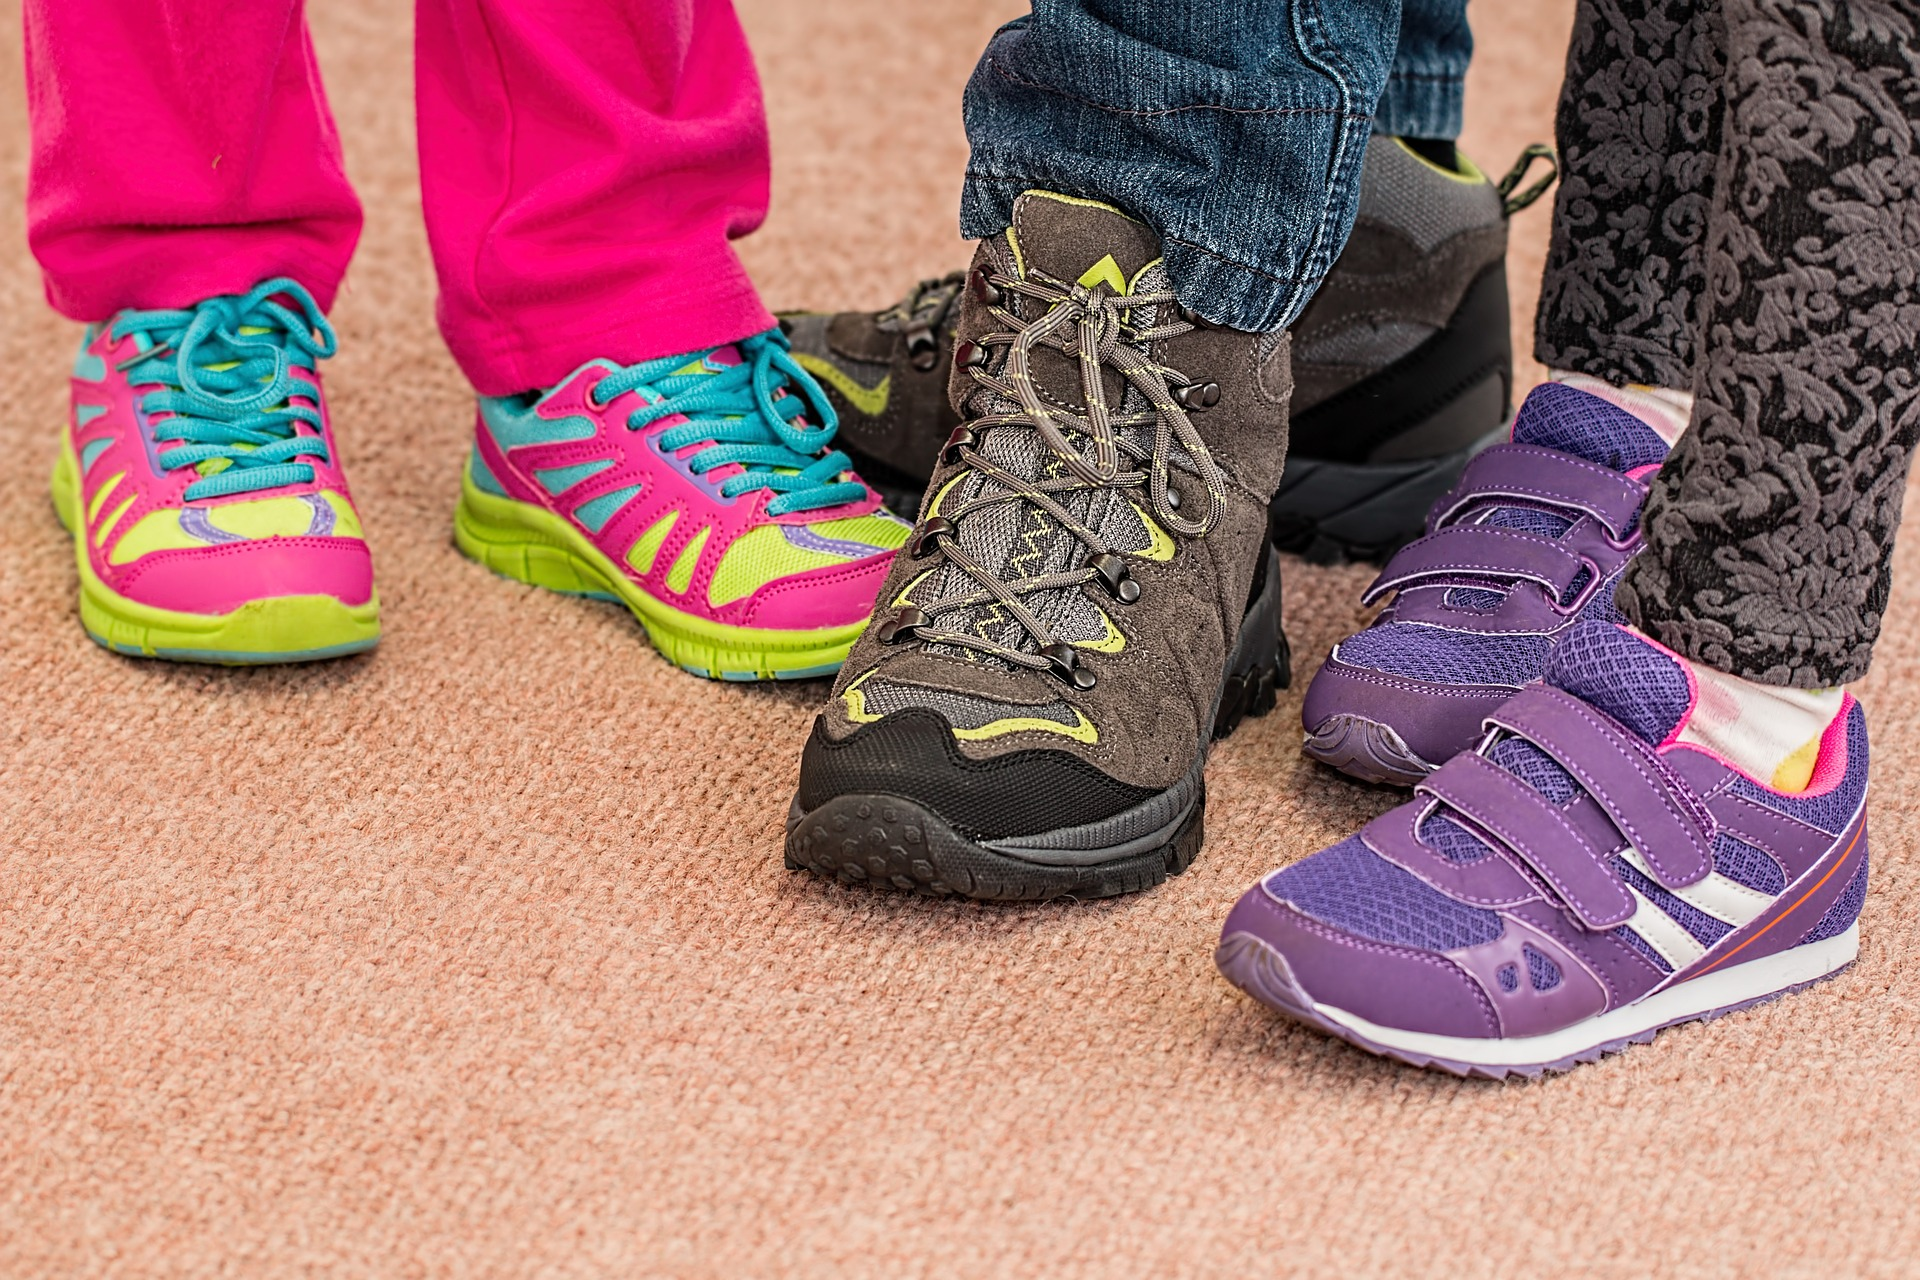 childrens-shoes-700069_1920.jpg